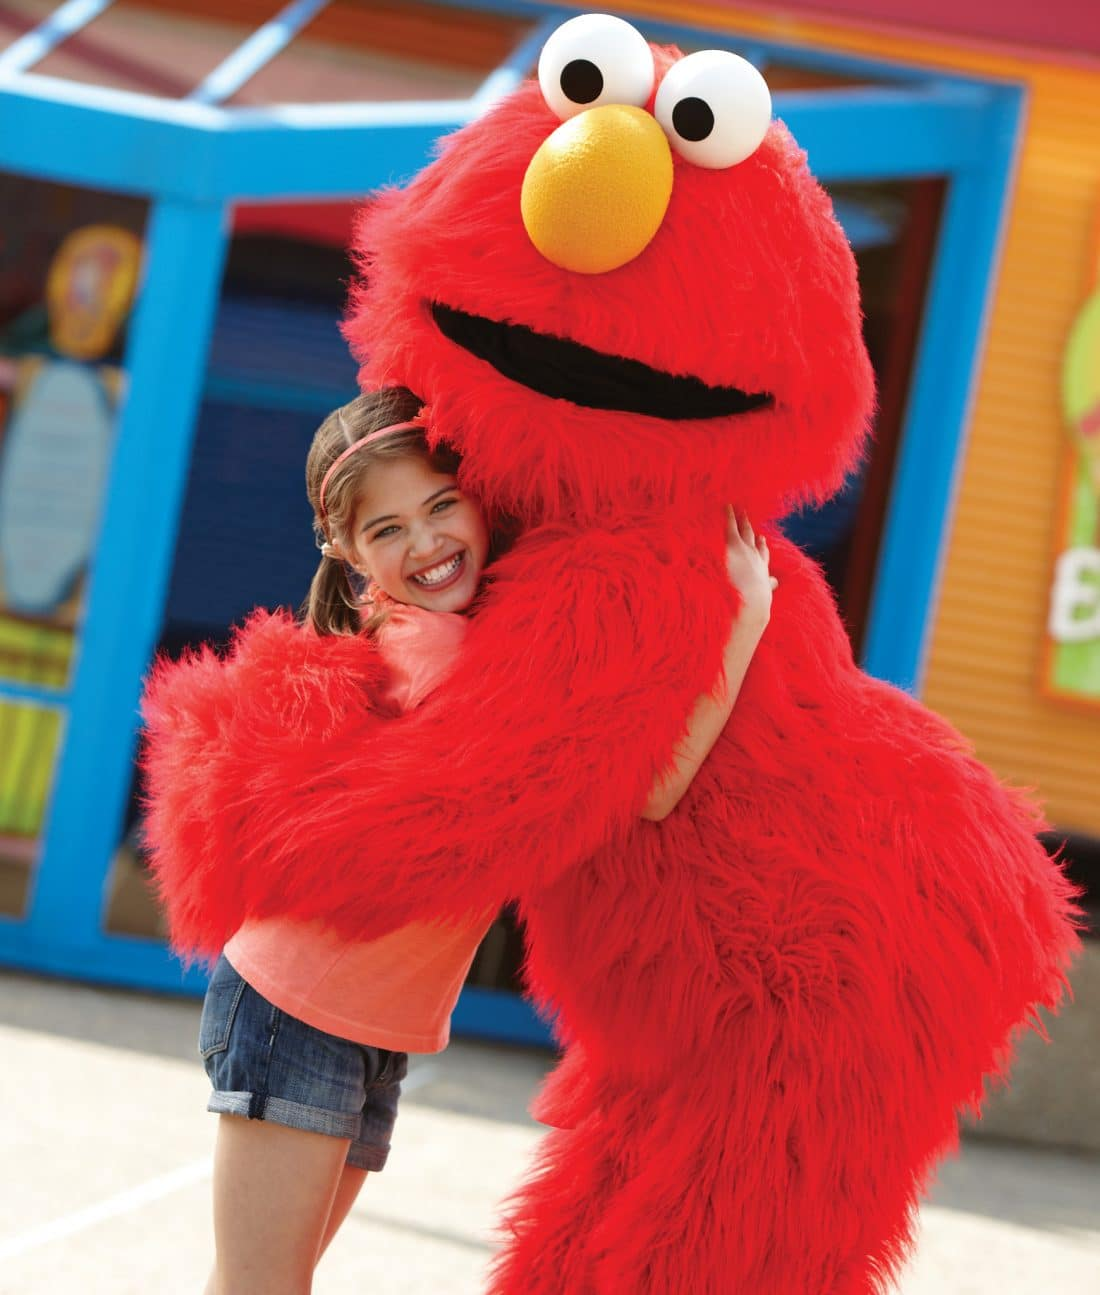 Every weekend from April 13 through May 20, join Elmo, Cookie Monster, Abby Cadabby and everyone's favorite furry friends for fun atSesame Street® Kids' Weekends. Grab your spring time tickets today for some weekend fun with Elmo and all his friends.